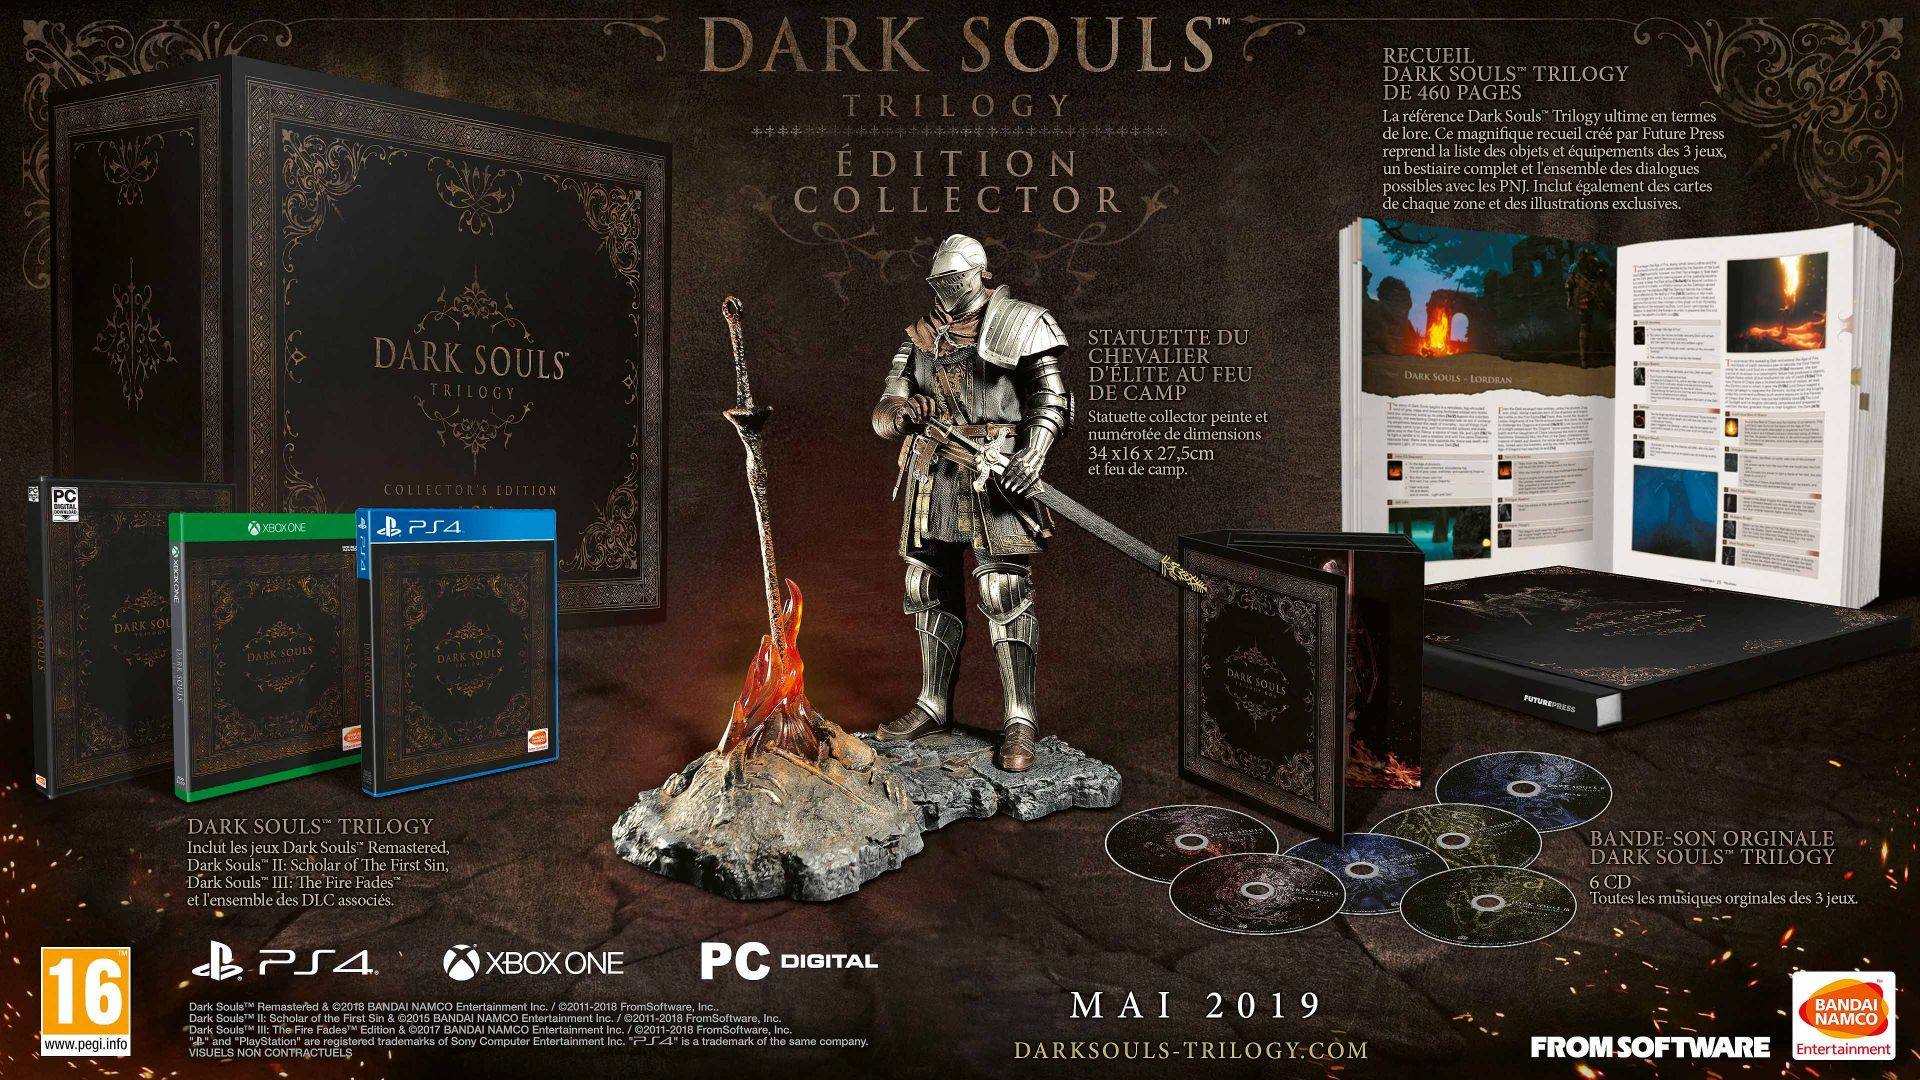 Edition Collector Dark Souls Trilogy Steelbook Futurepak